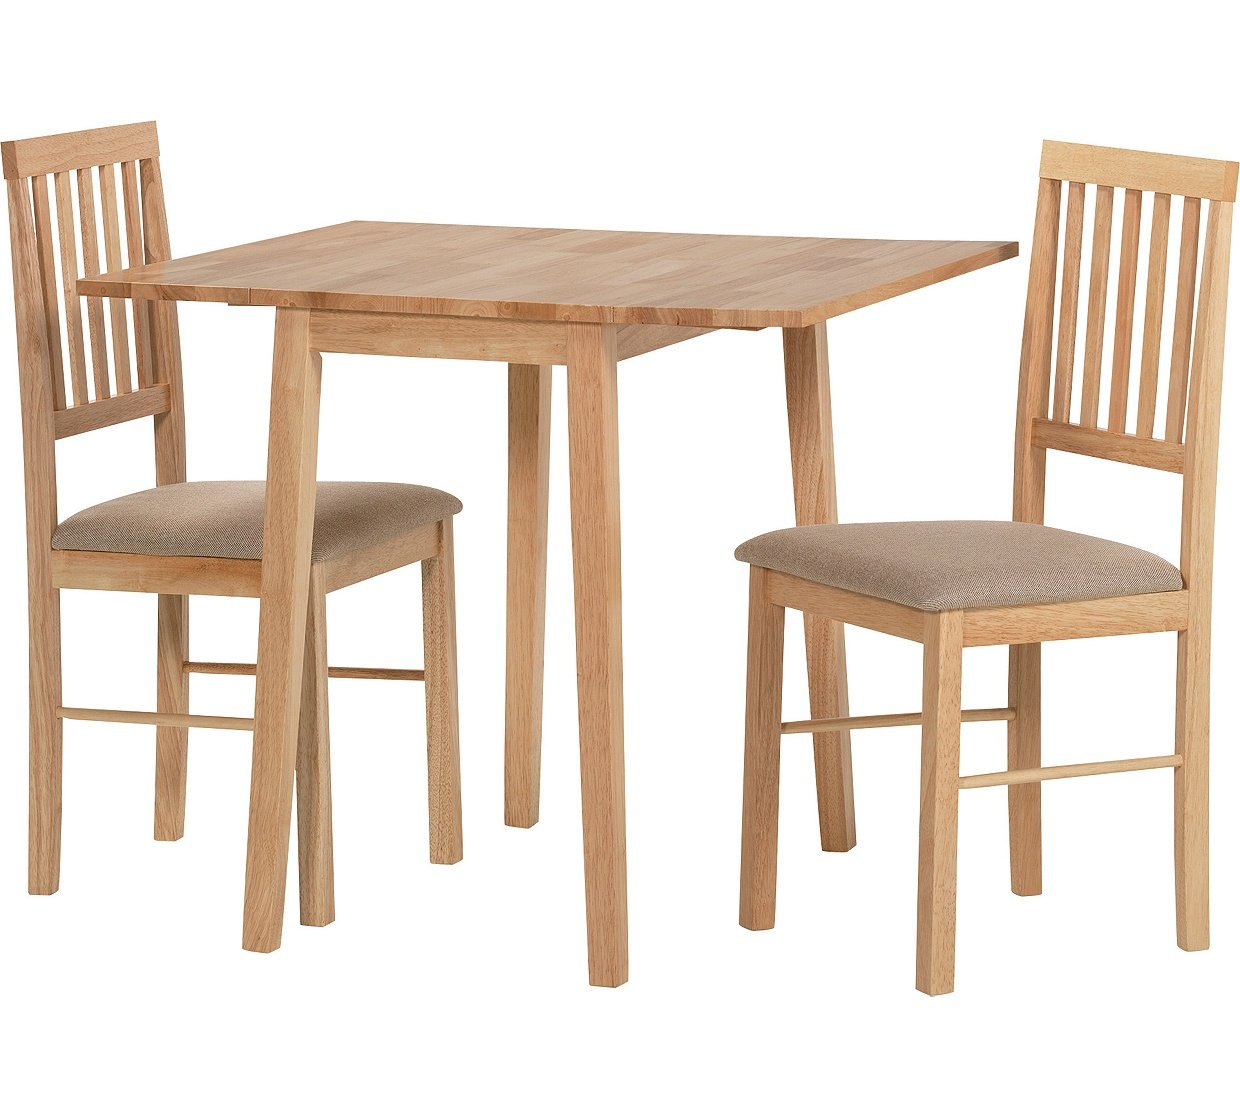 HOME Kendall Drop Leaf Ext Dining Table 2 Chairs Natural Amazoncouk Kitchen Home